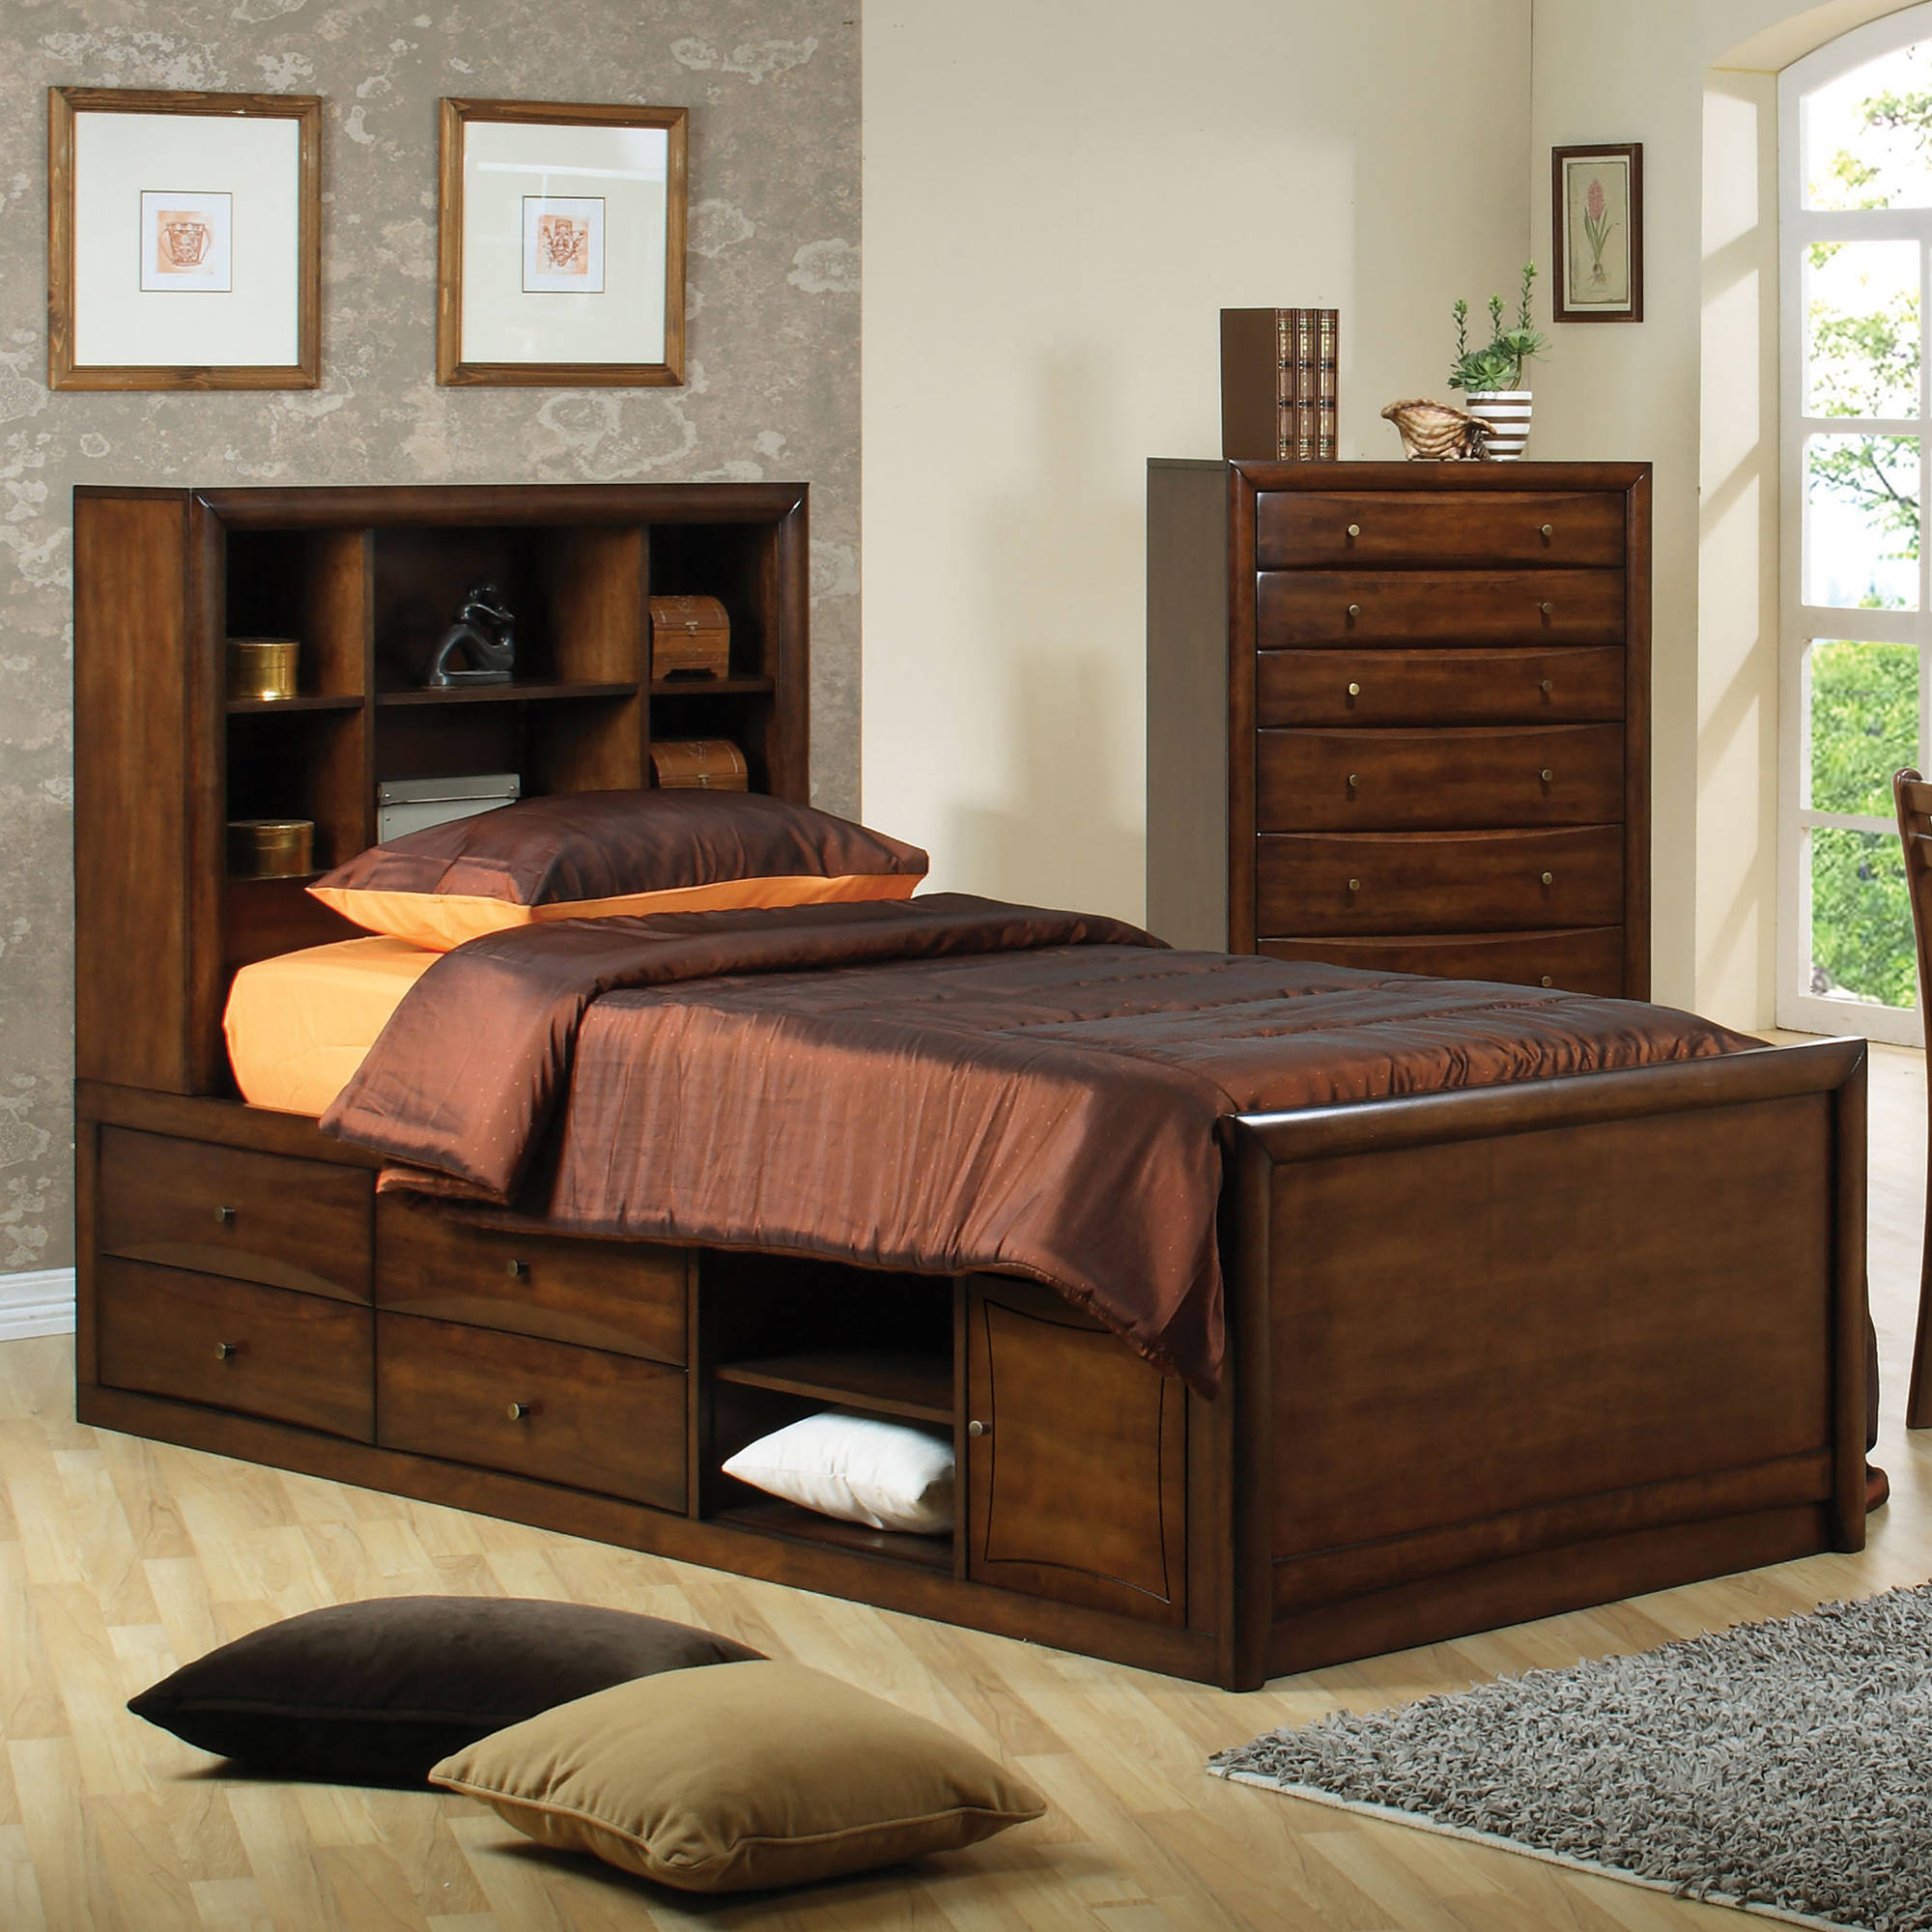 Coaster Company Hillary Chest, Warm Brown